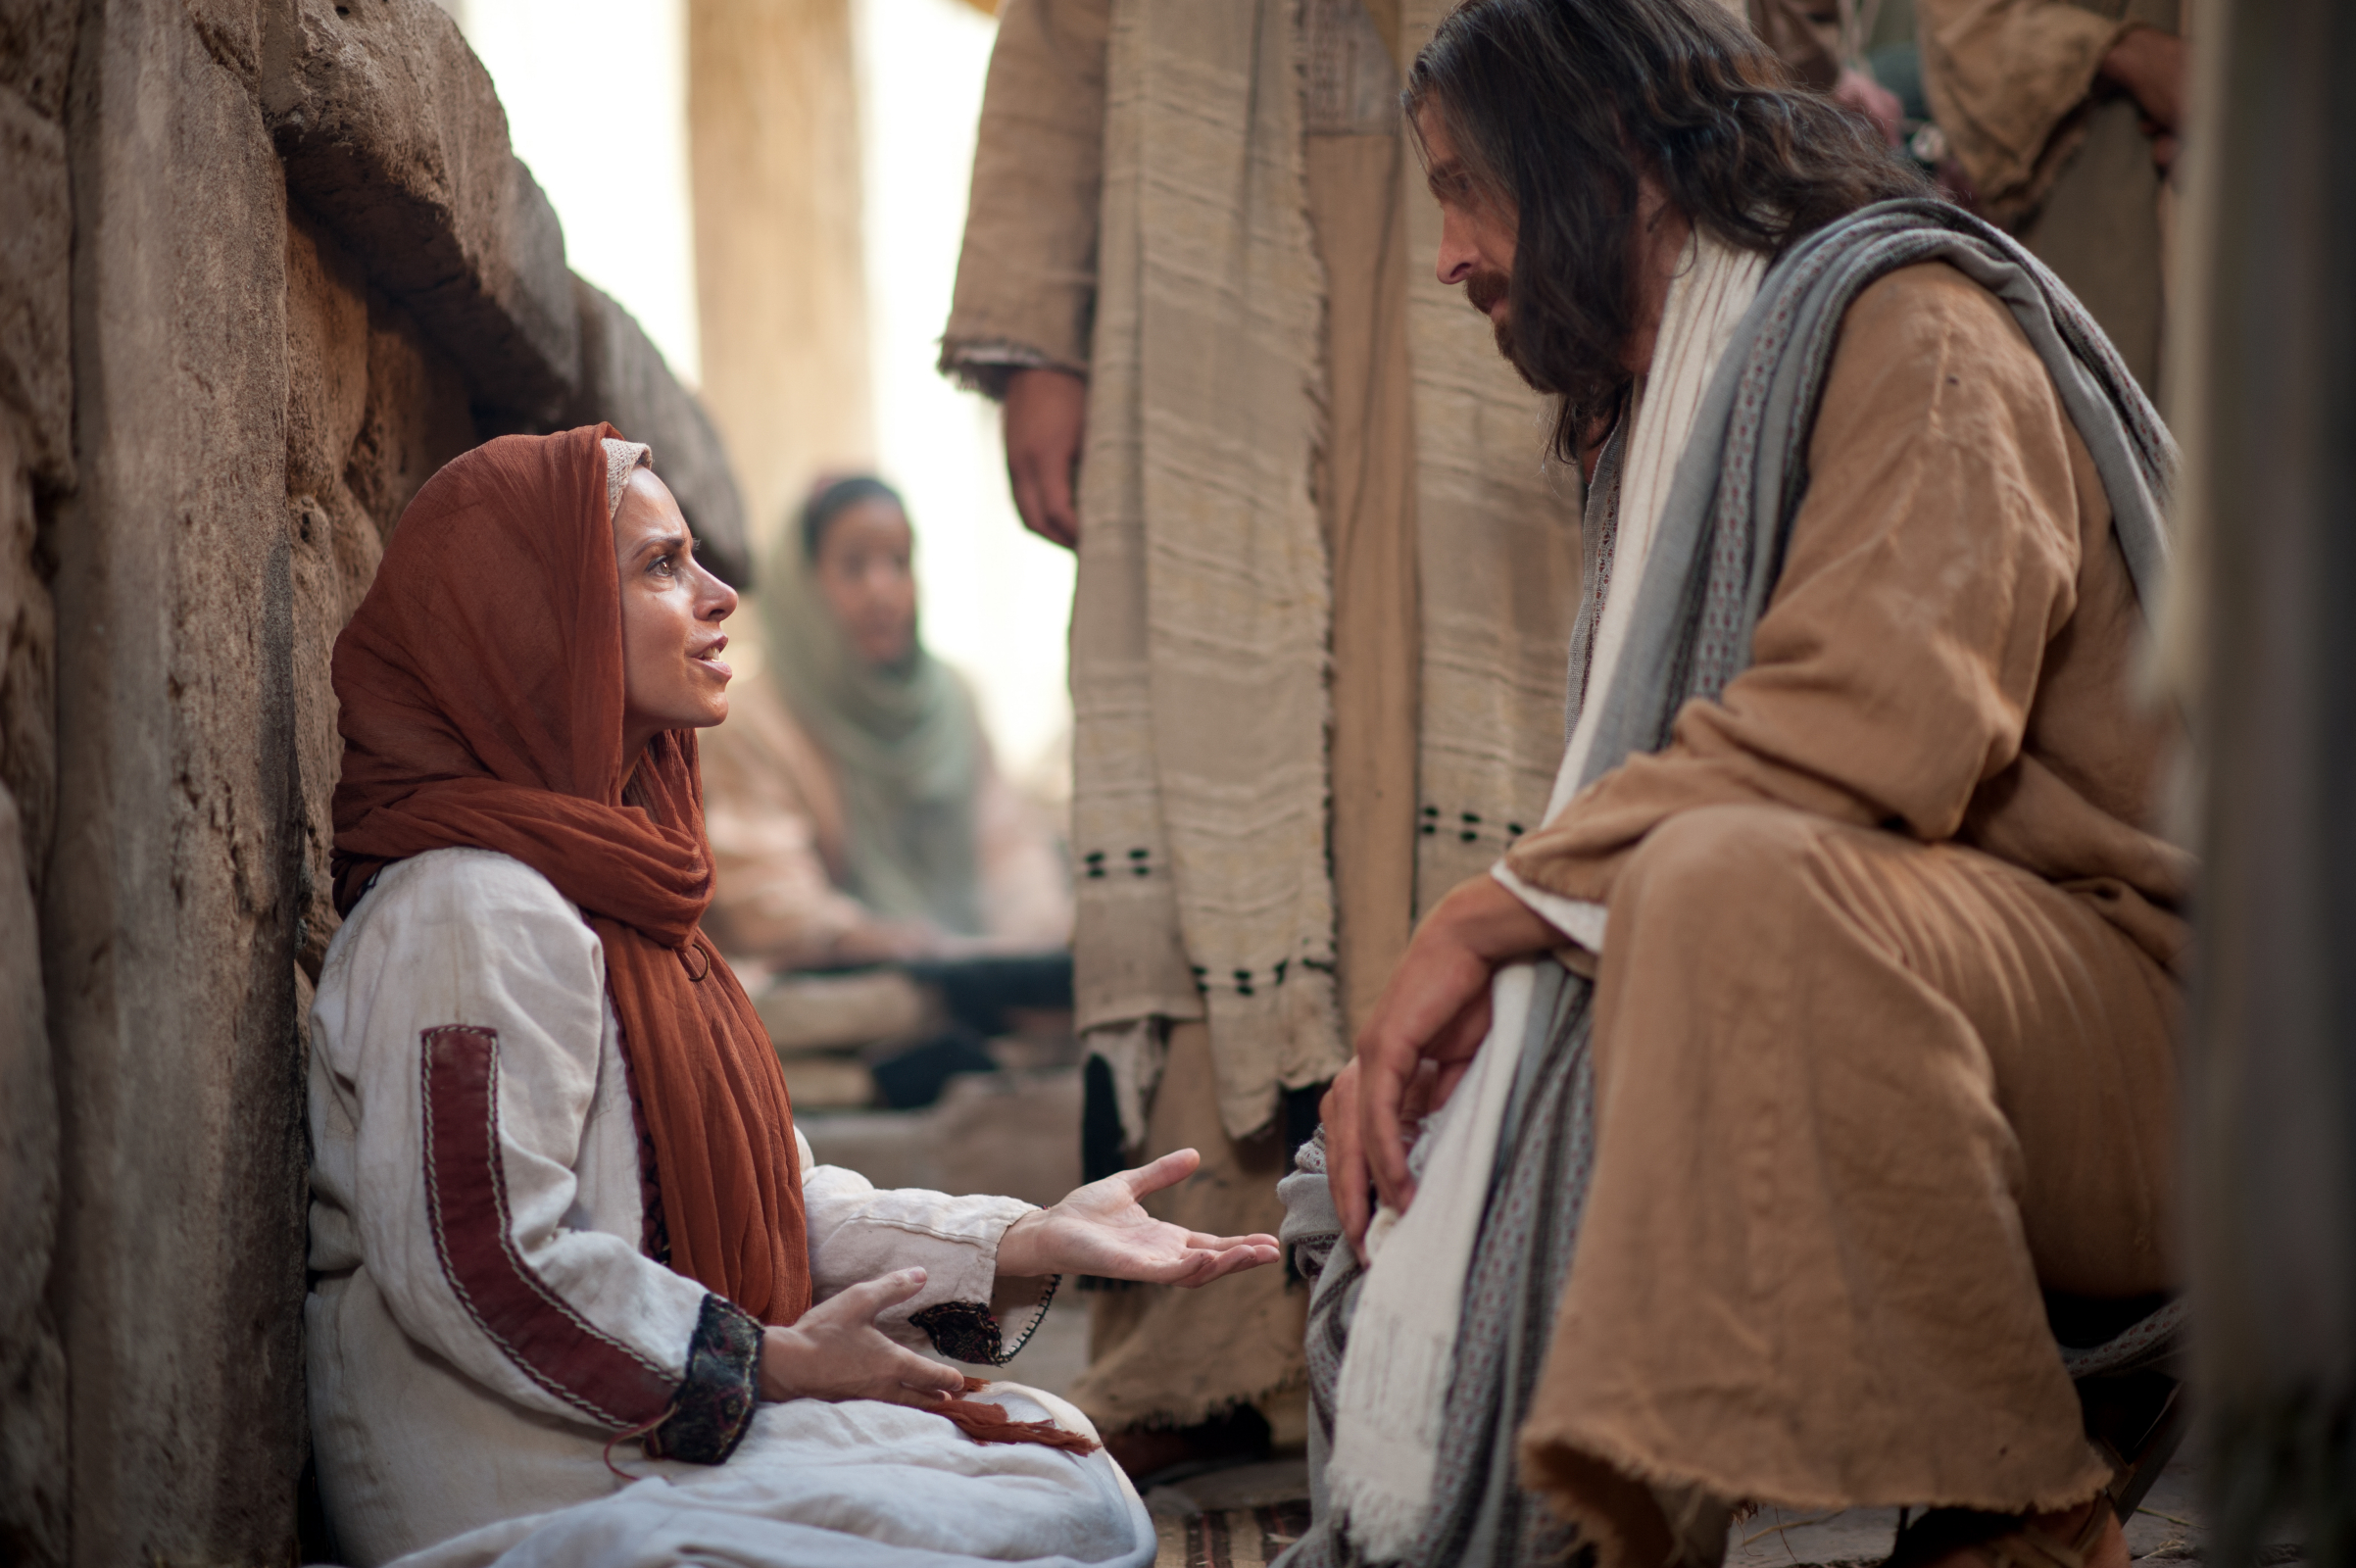 Jesus speaks with a woman of faith